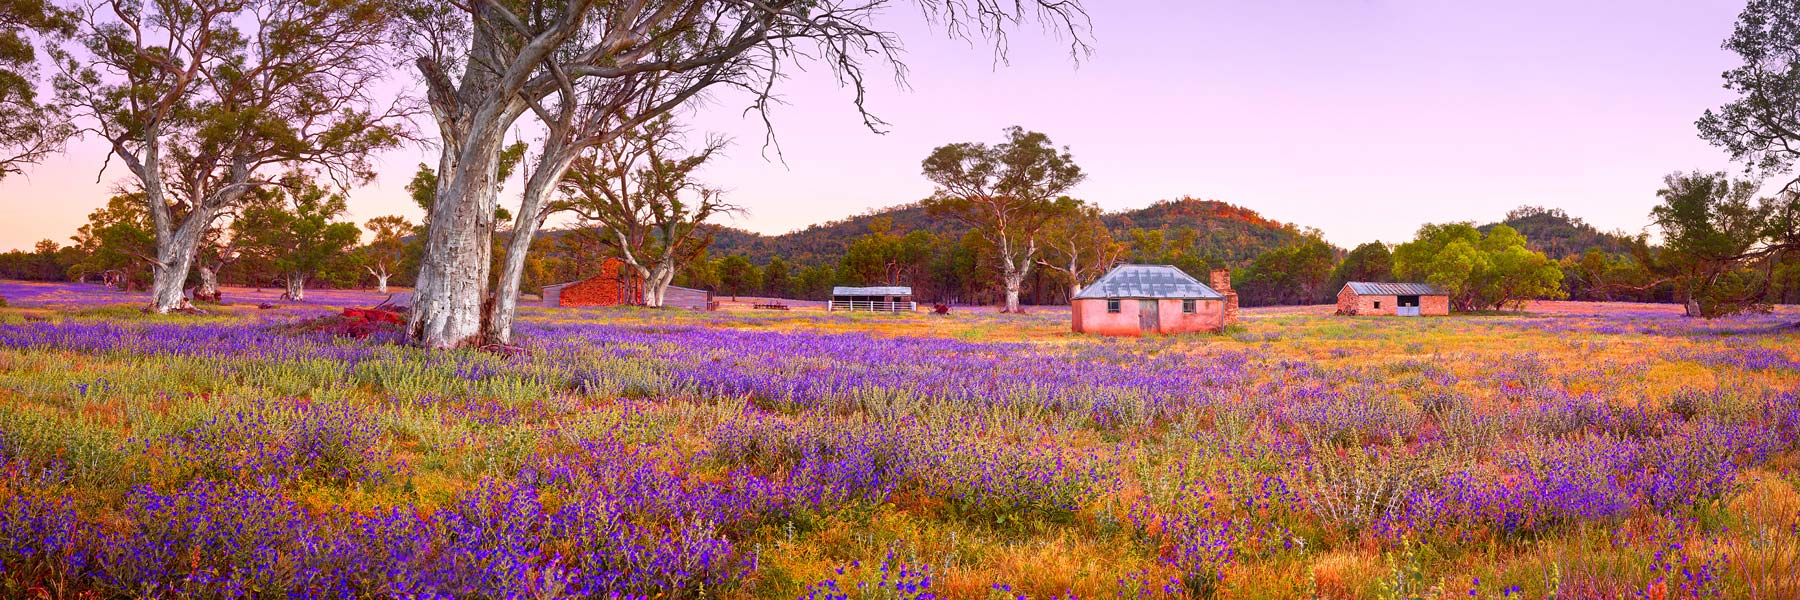 Pastel sunset over the ruins of Old Wilpena Station, South Australia, with a carpet of wildflowers in the foreground.